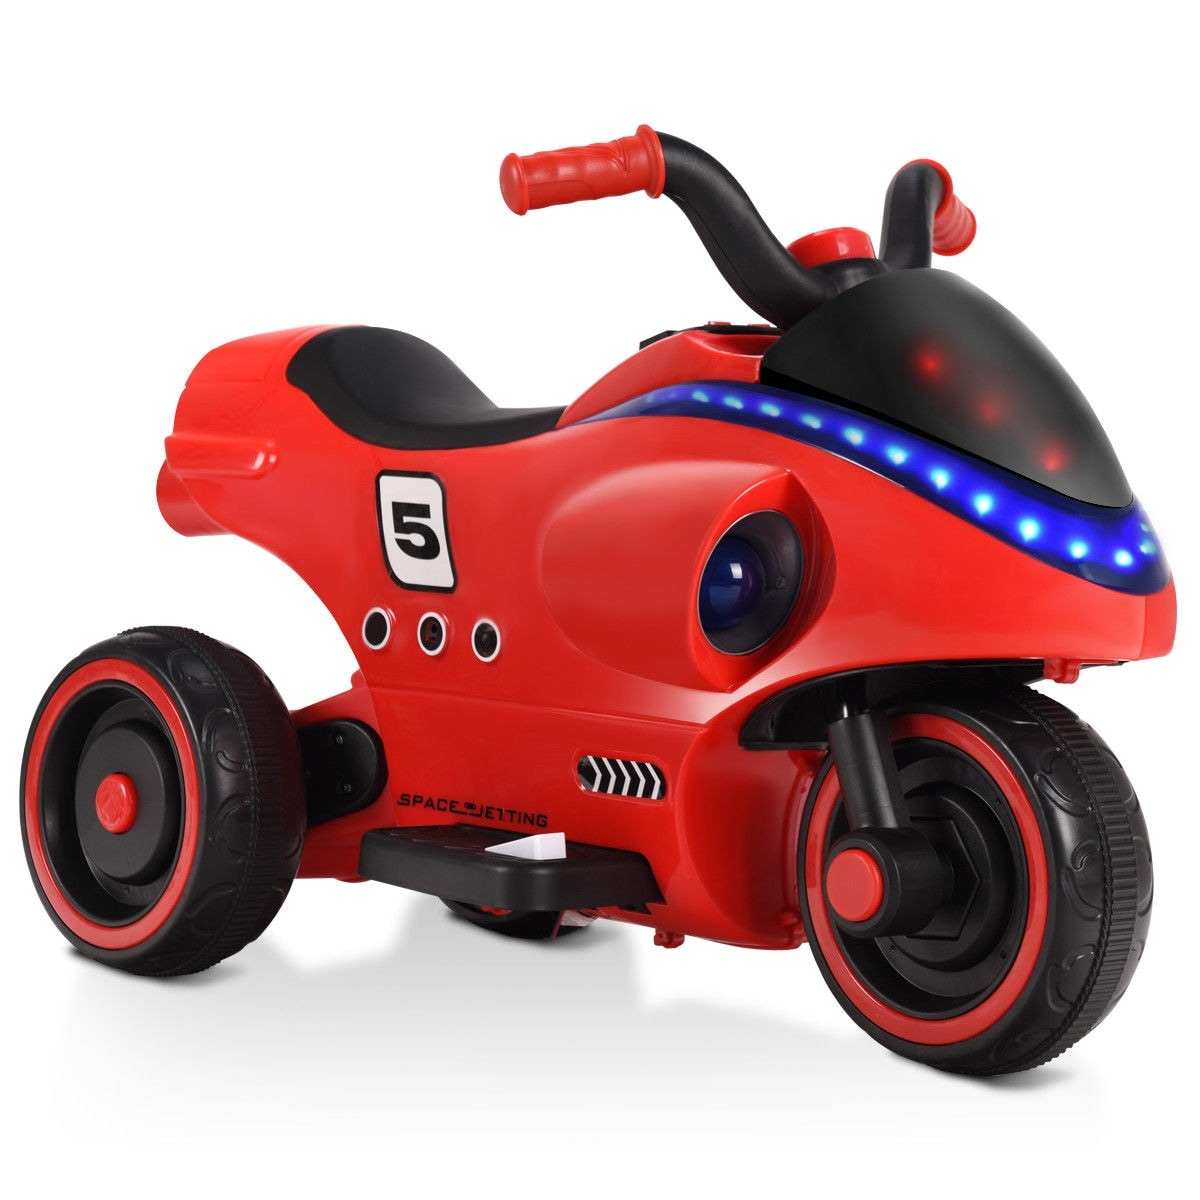 Shop Gymax 6v Kids Ride On Motorcycle 3 Wheels Battery Powered W